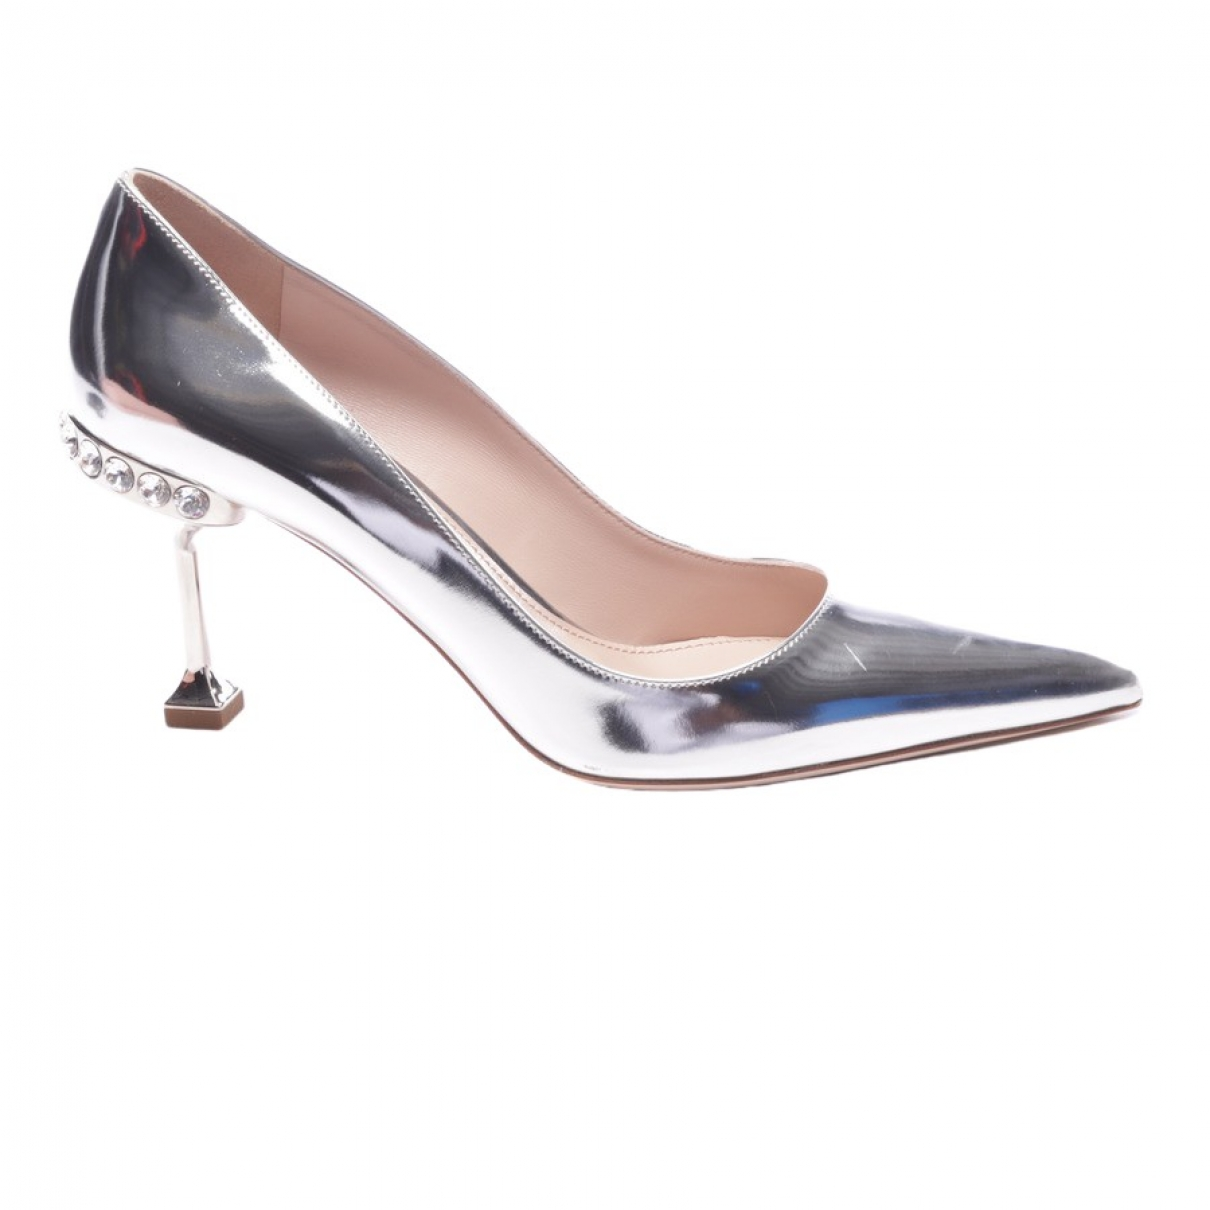 Miu Miu \N Metallic Leather Heels for Women 39.5 EU